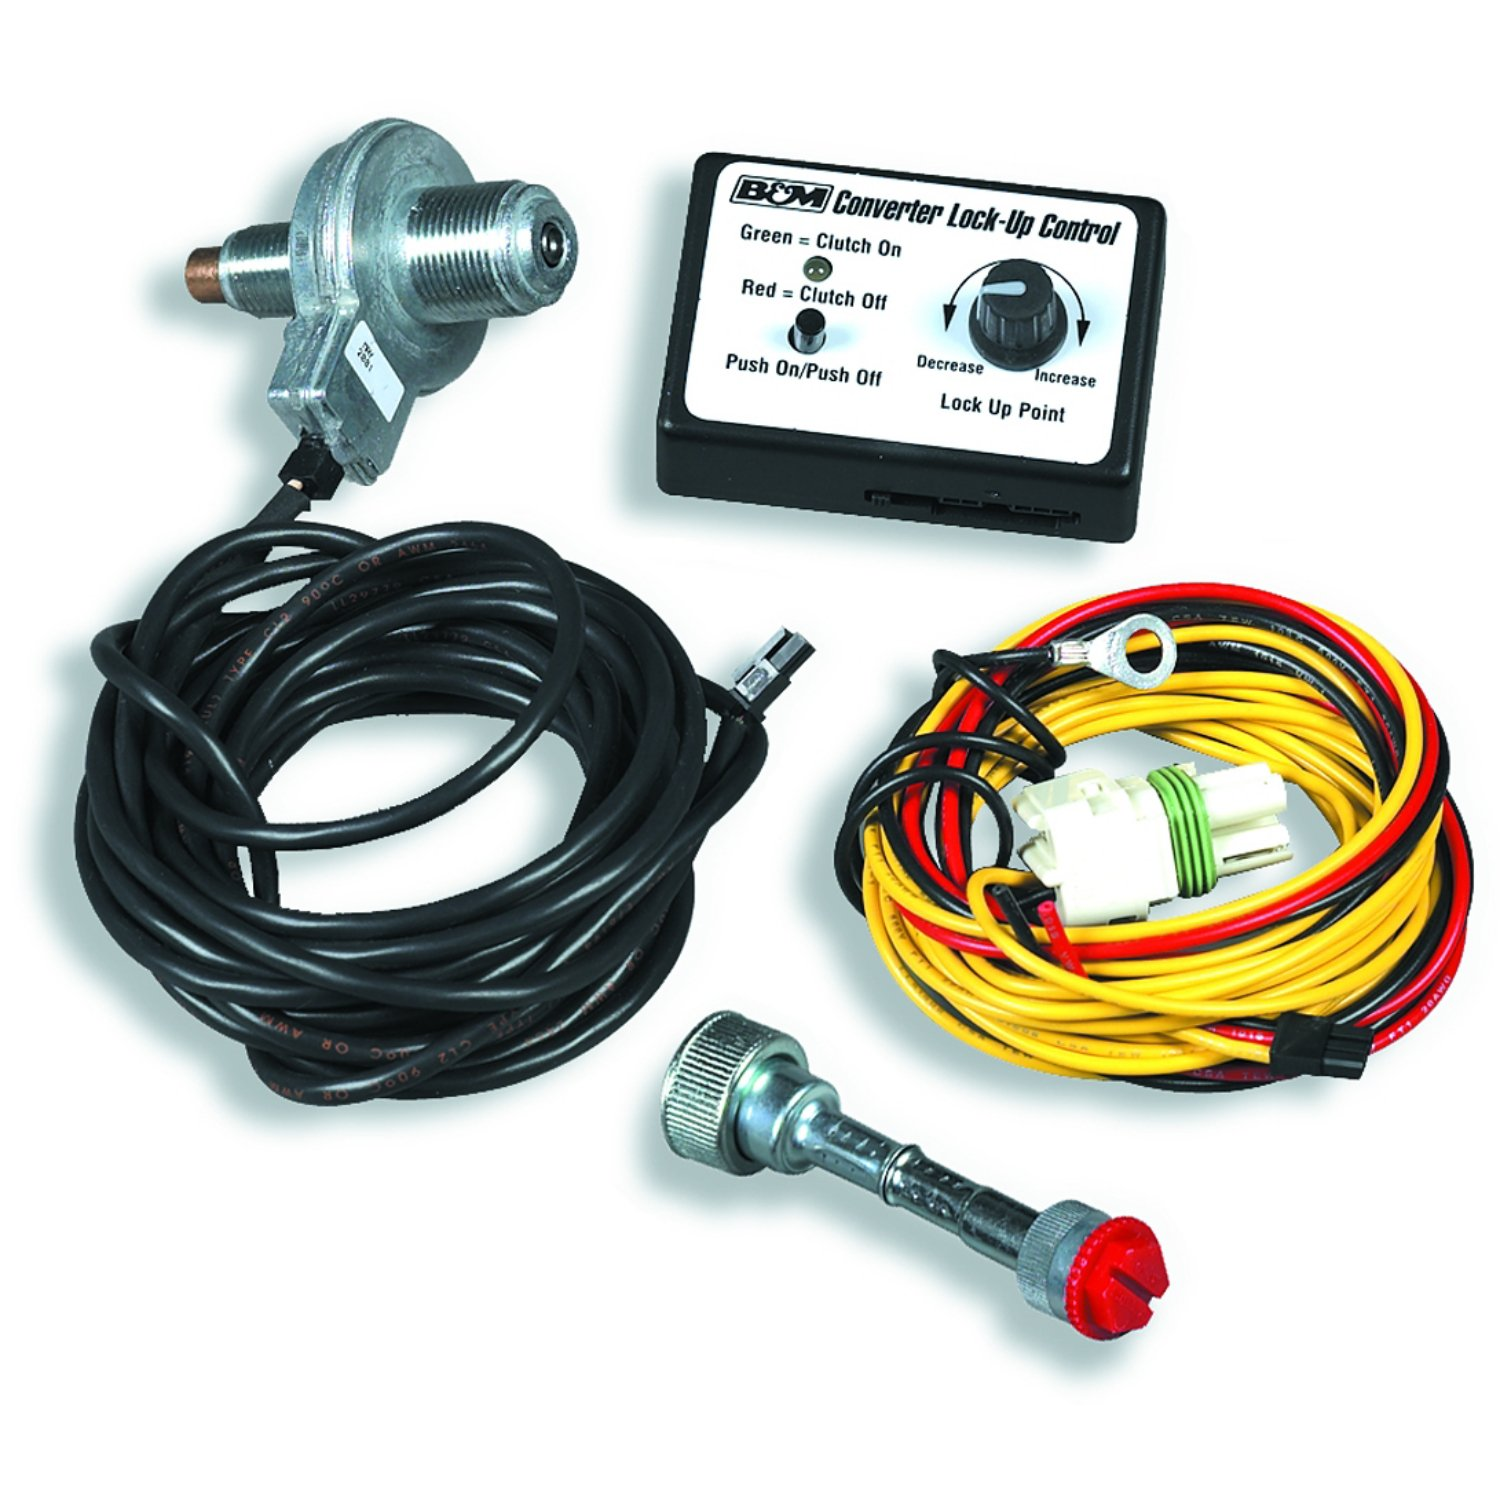 hight resolution of 70244 transmission accessories converter lockup controller image